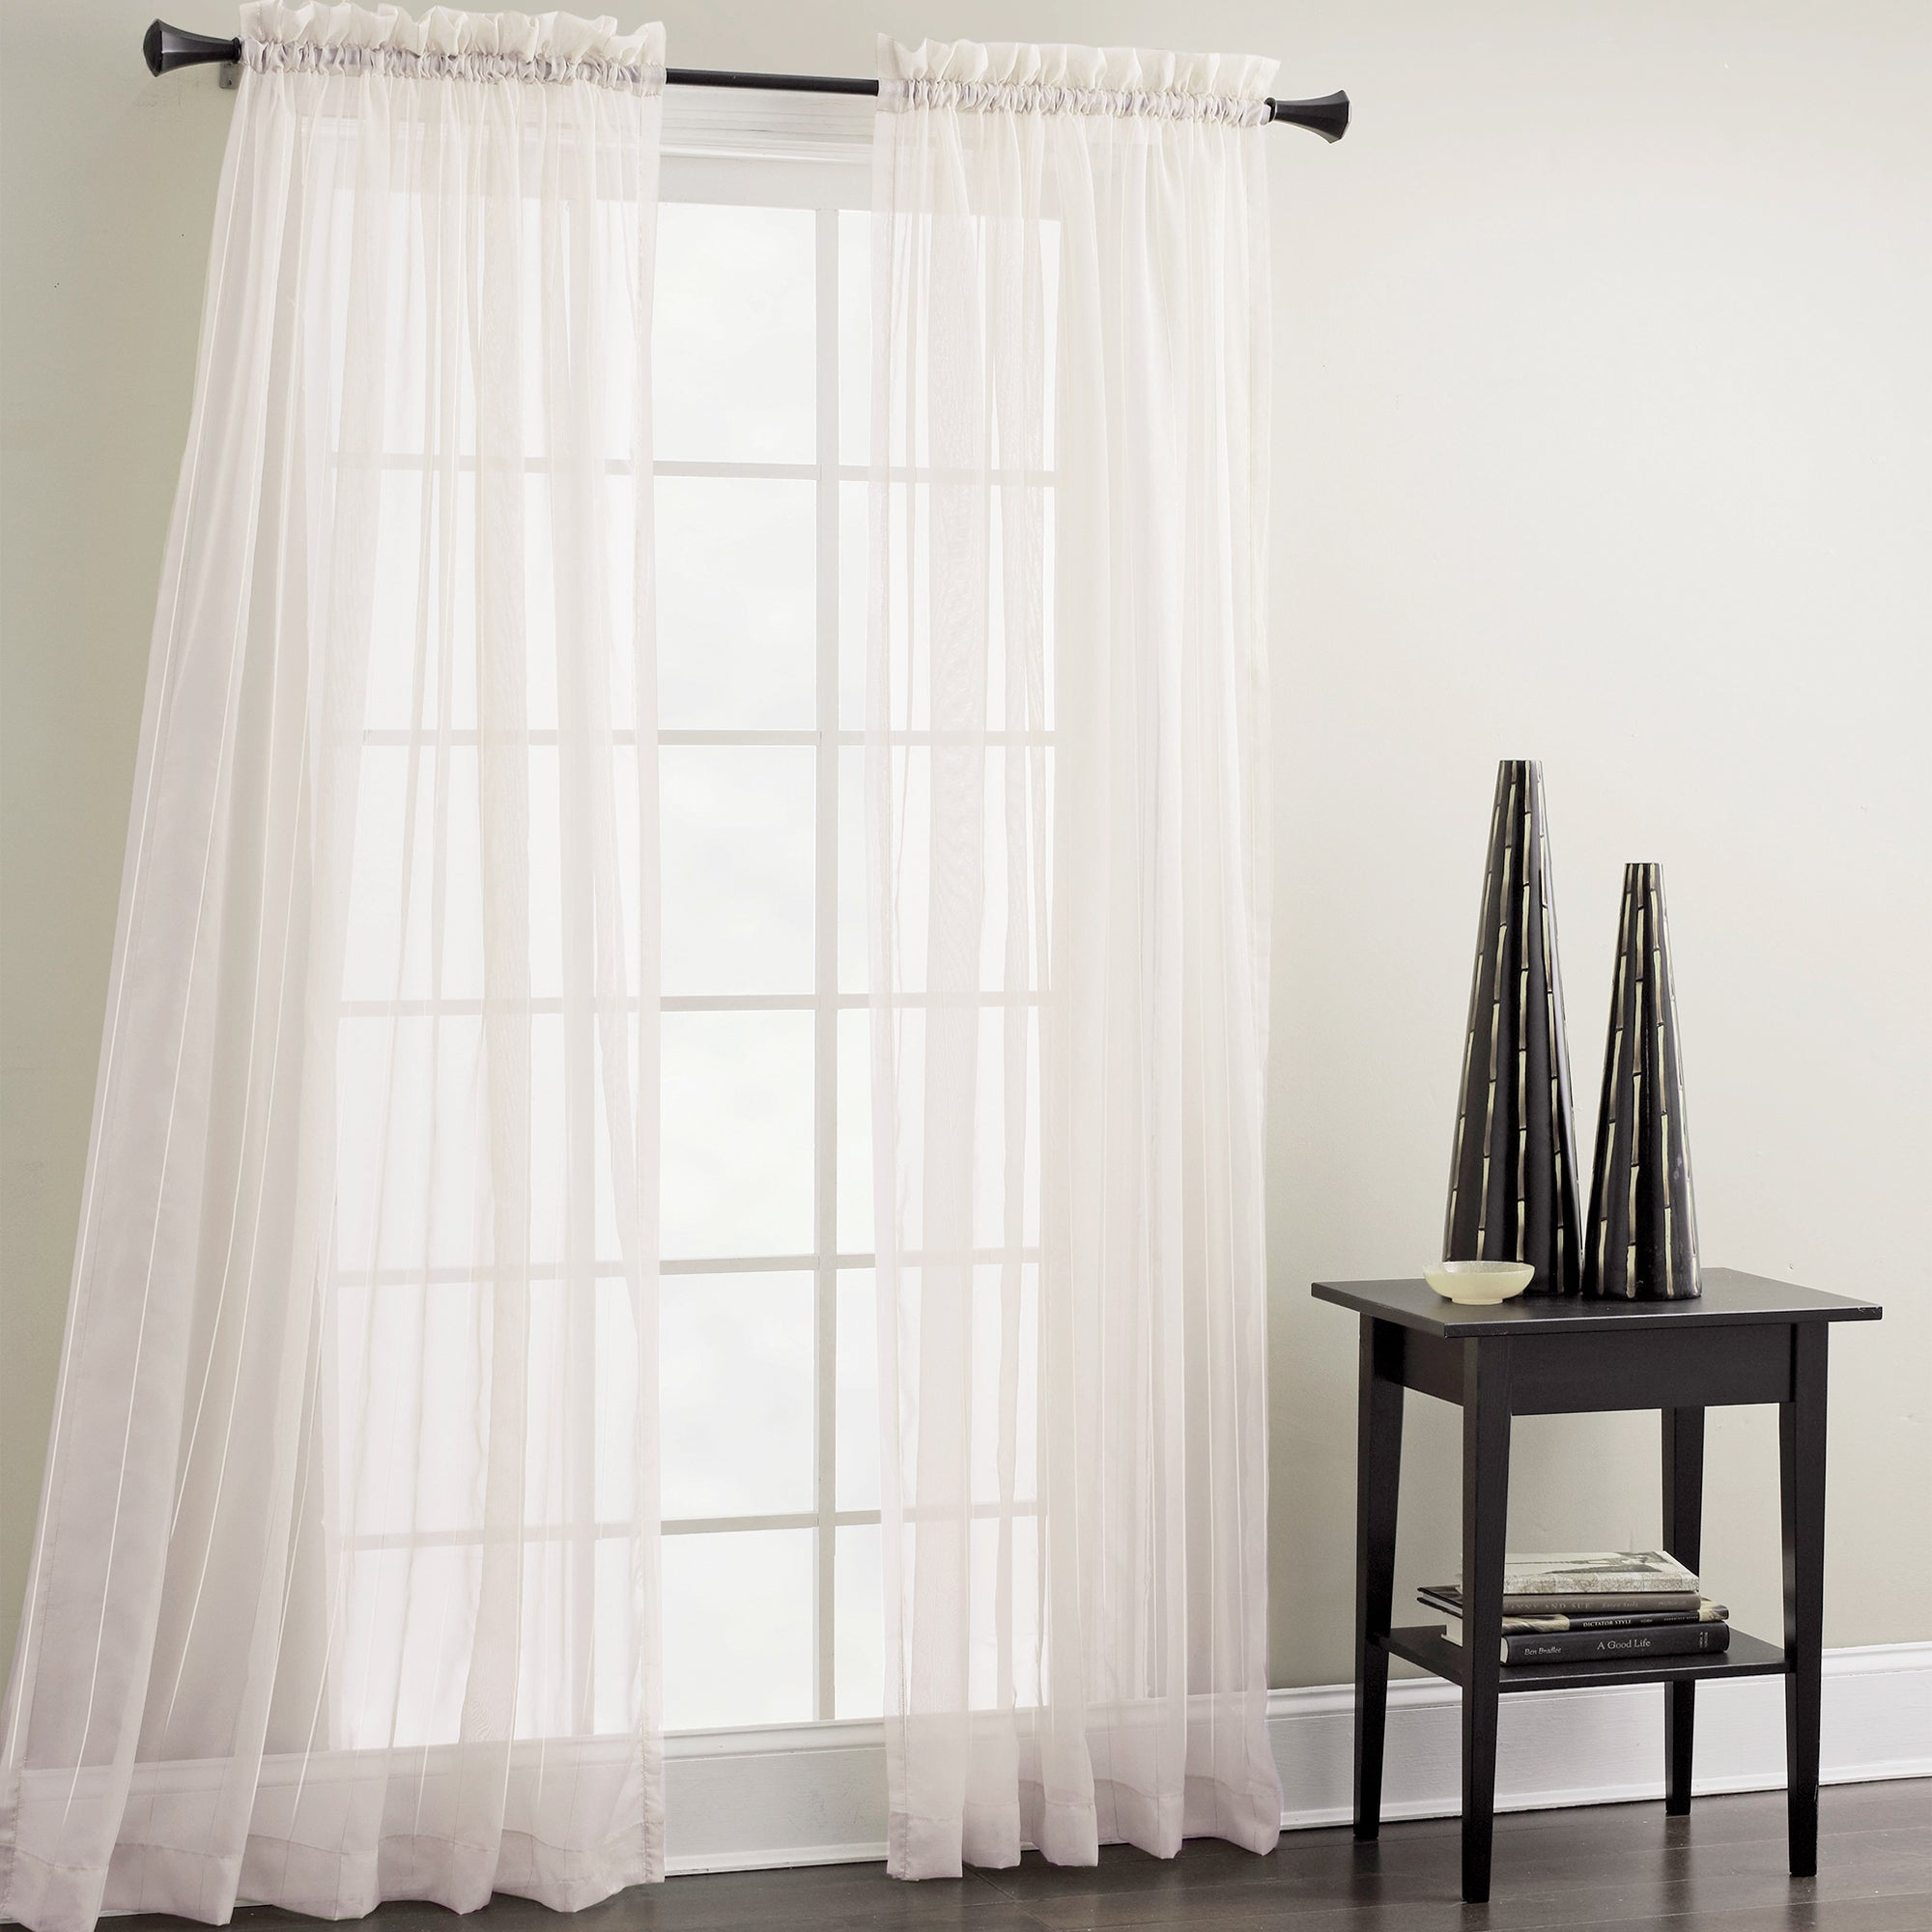 Croscill White Sheer Mist Window Panel (White), Size 84 I...